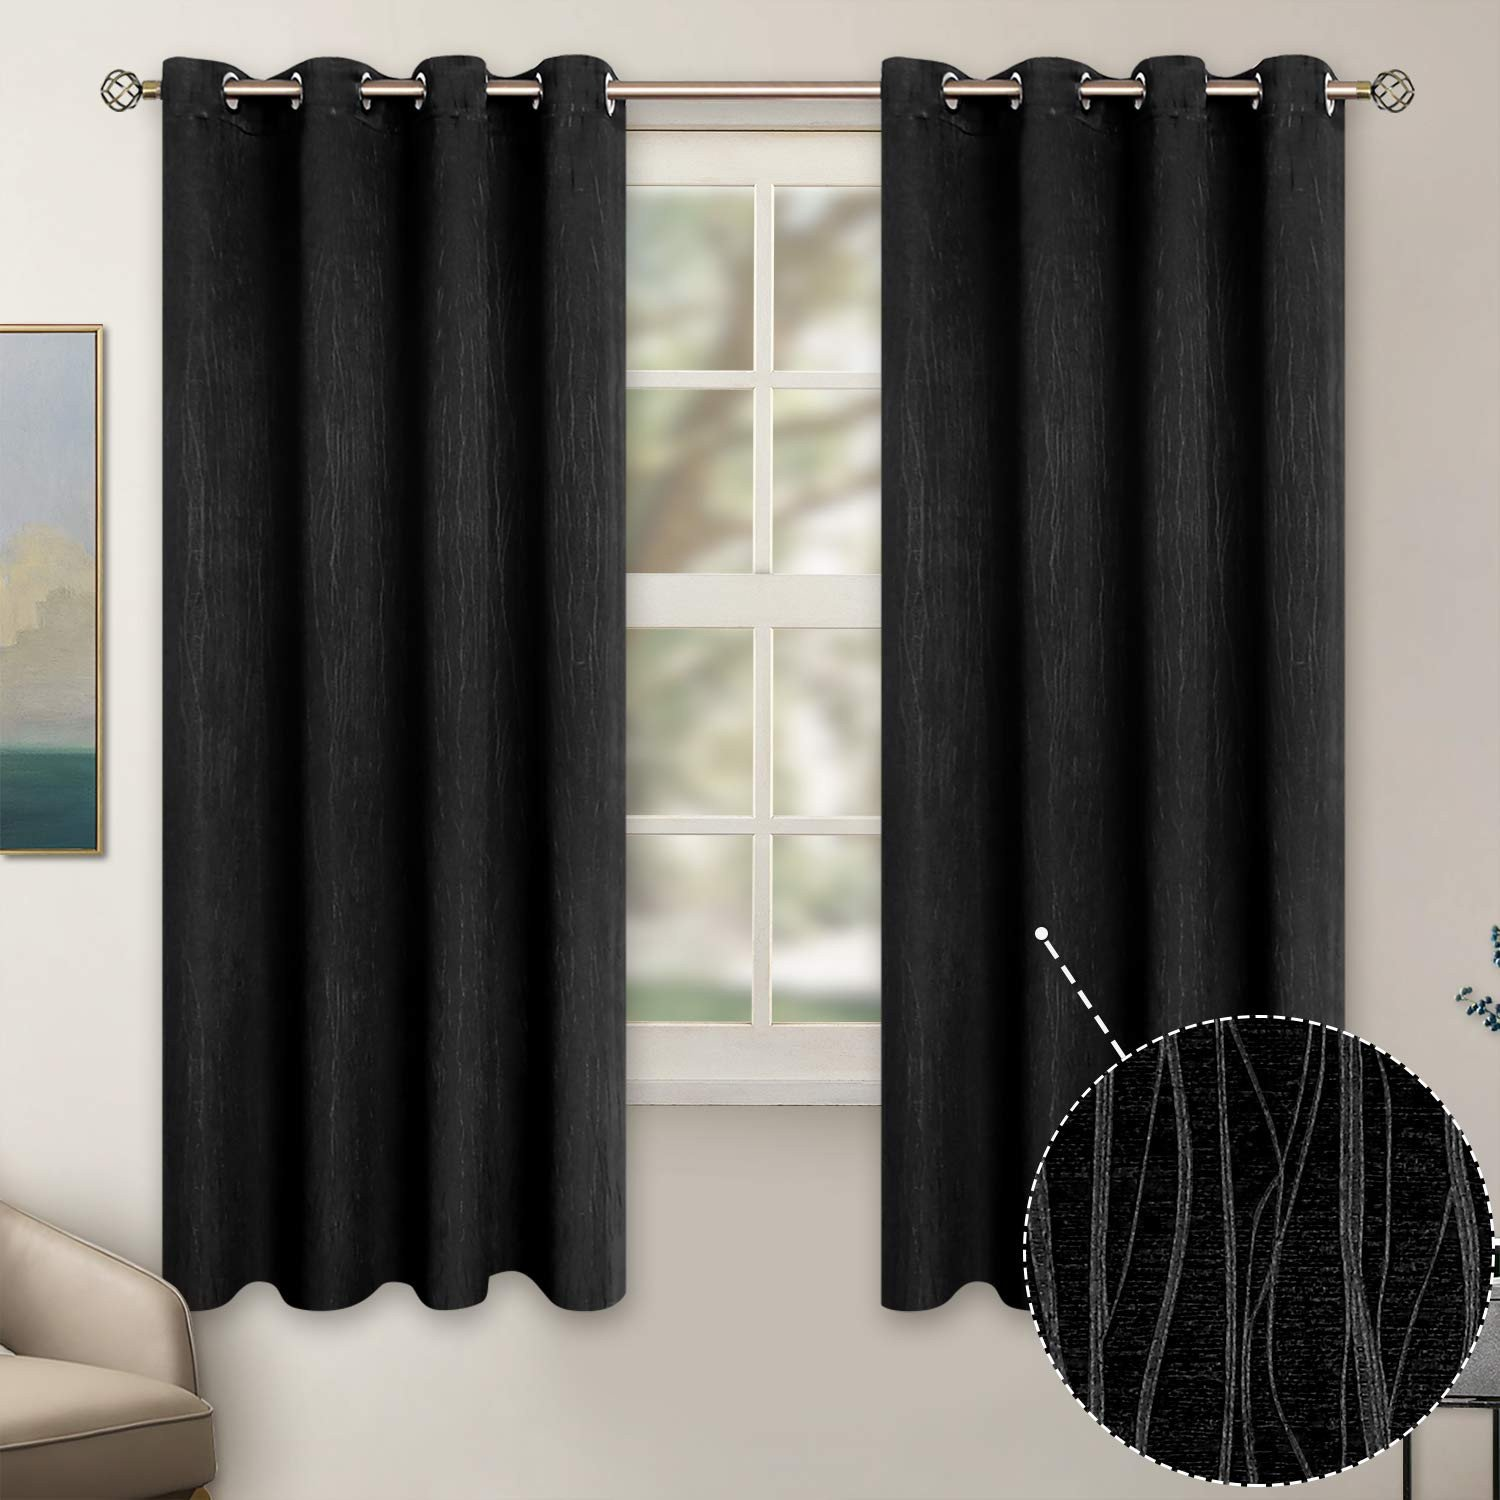 Navy Blue Curtains for Bedroom Fresh Bgment Embossed Blackout Curtains for Bedroom Grommet thermal Insulated Room Darkening Curtains for Living Room 52 X 63 Inch Set Of 2 Panels